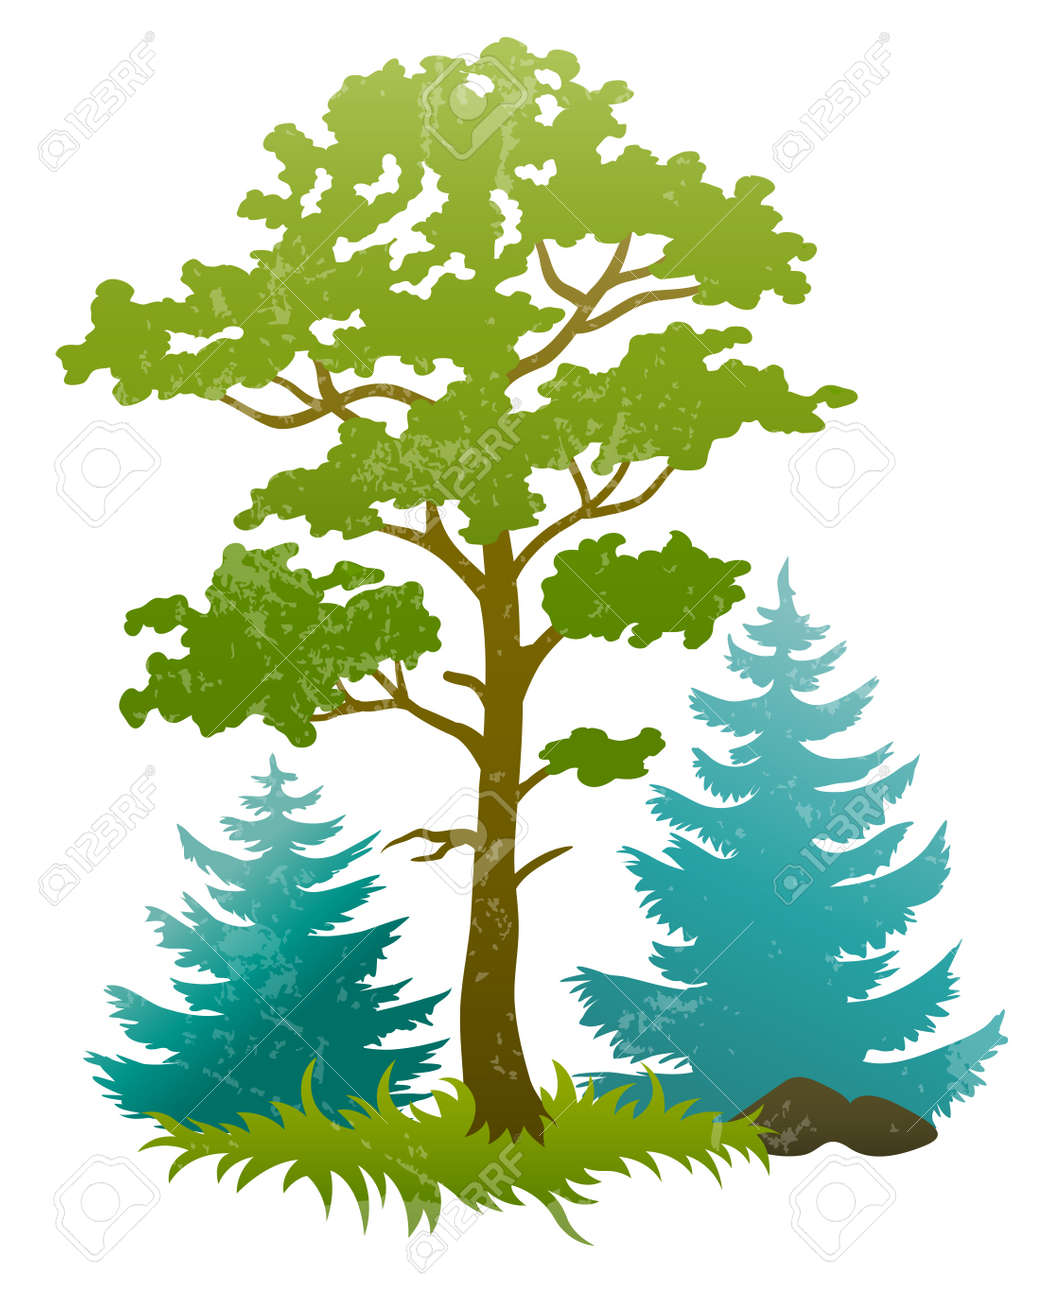 grunge silhouettes of forest tree and fir trees. Transparent objects used for shadows and lights drawing Stock Vector - 12422399